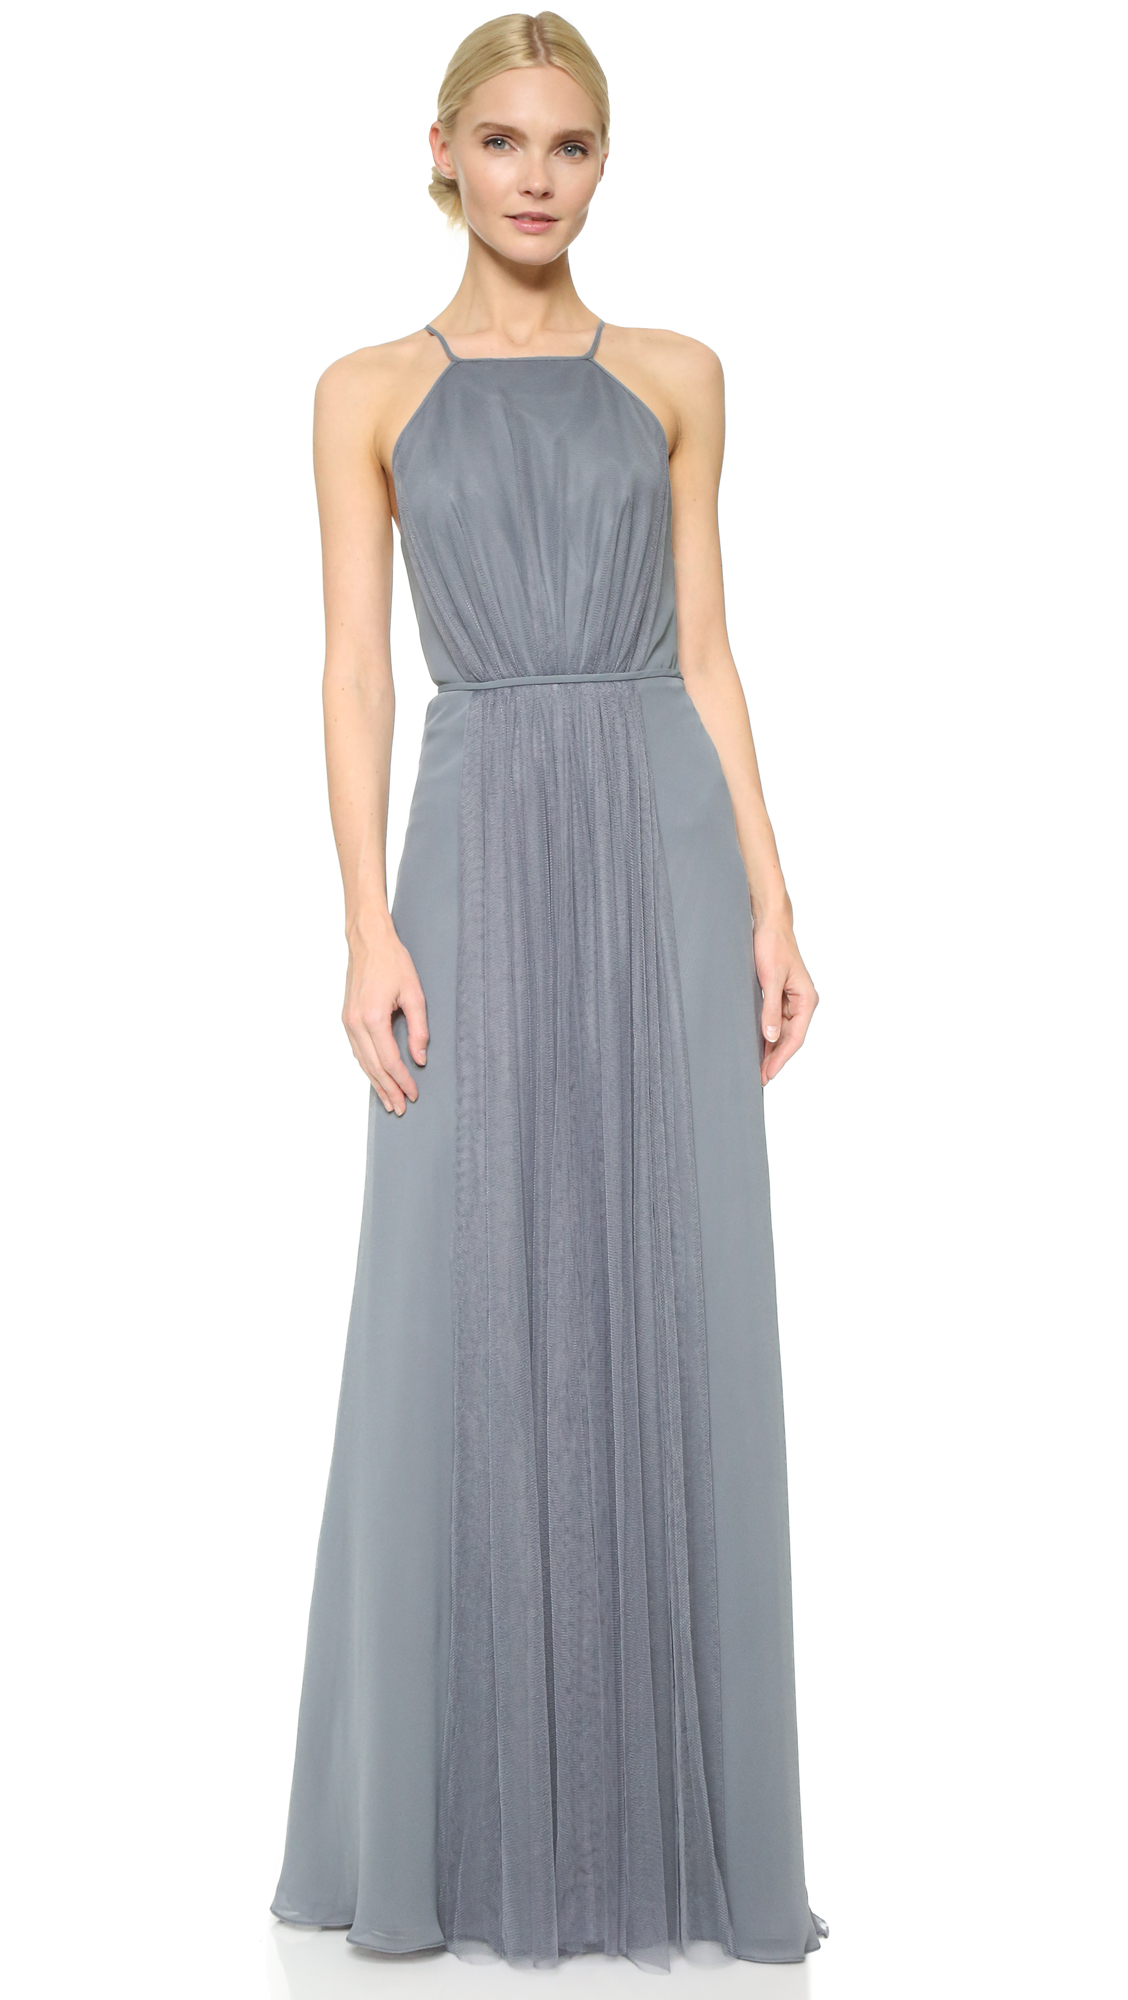 Monique Lhuillier Bridesmaids Halter Dress with Tulle Panel - Steel